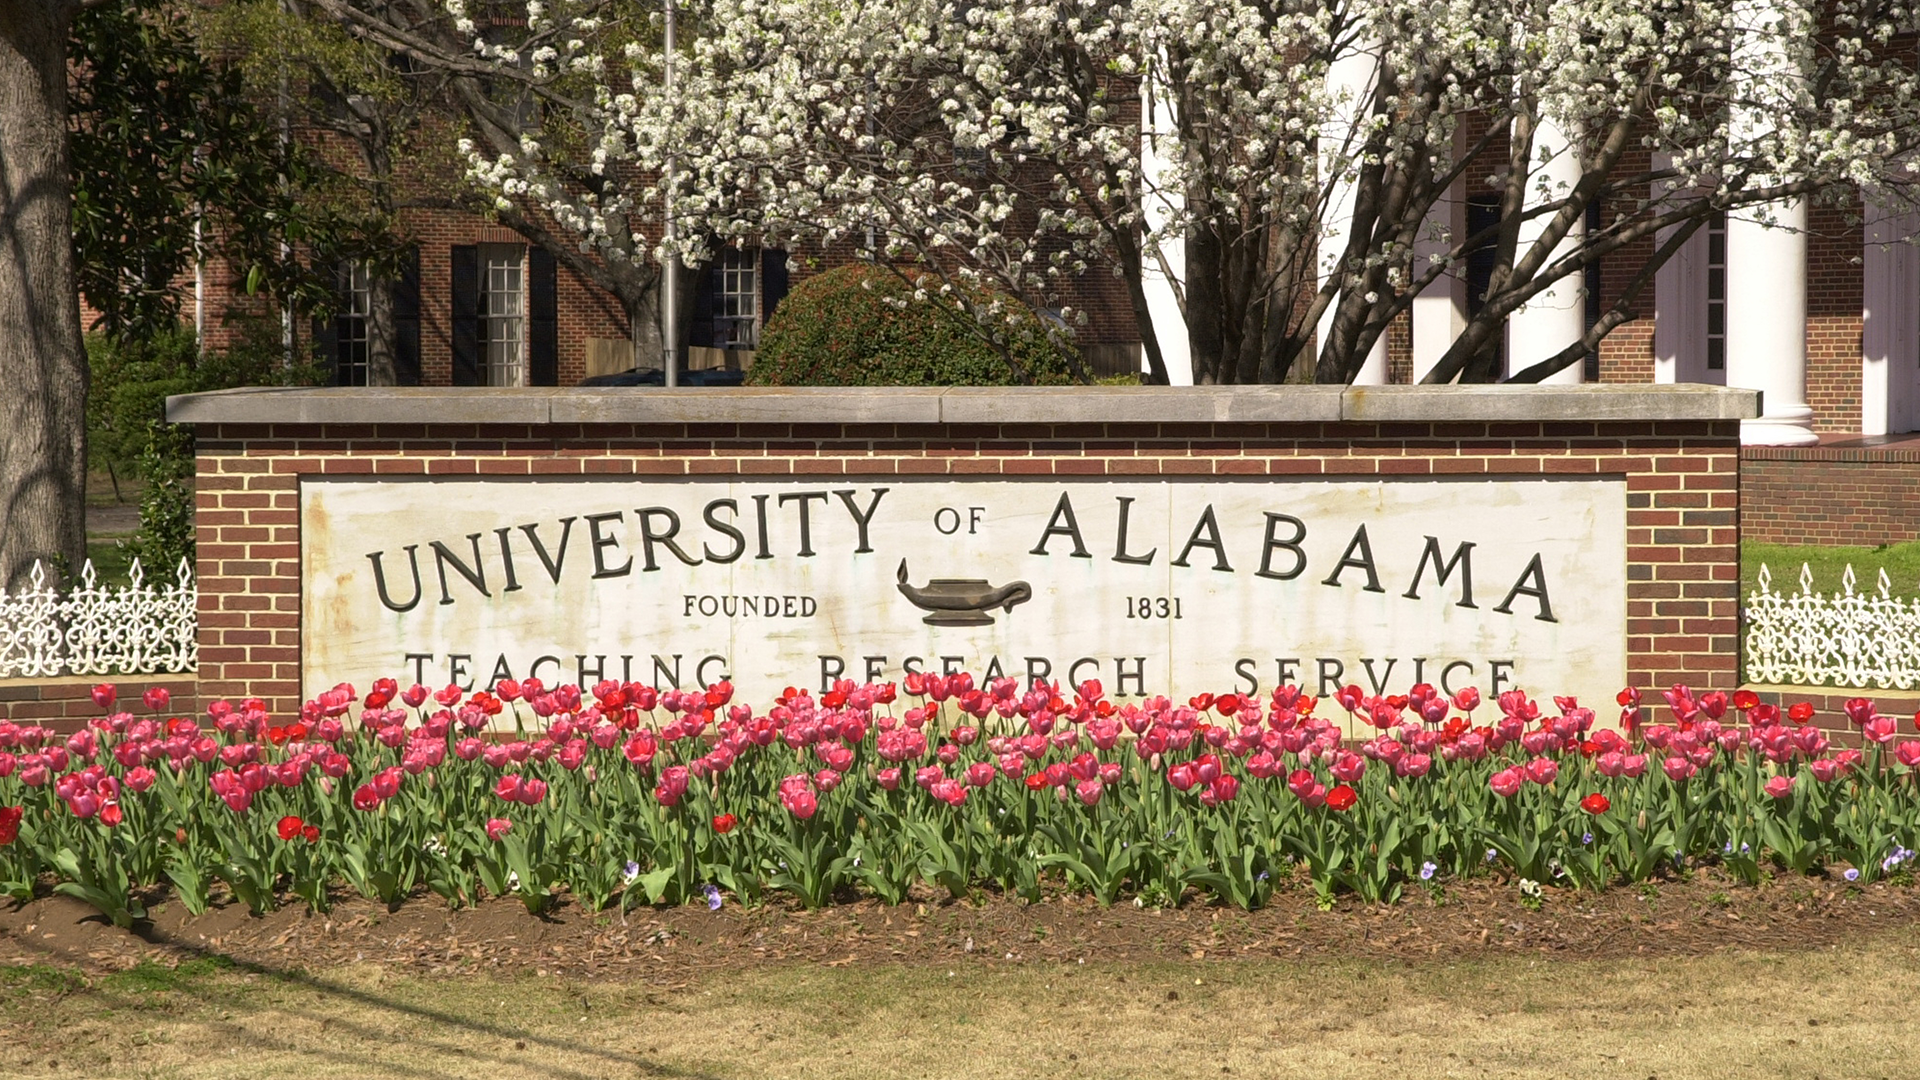 University of Alabama Teaching Research Service